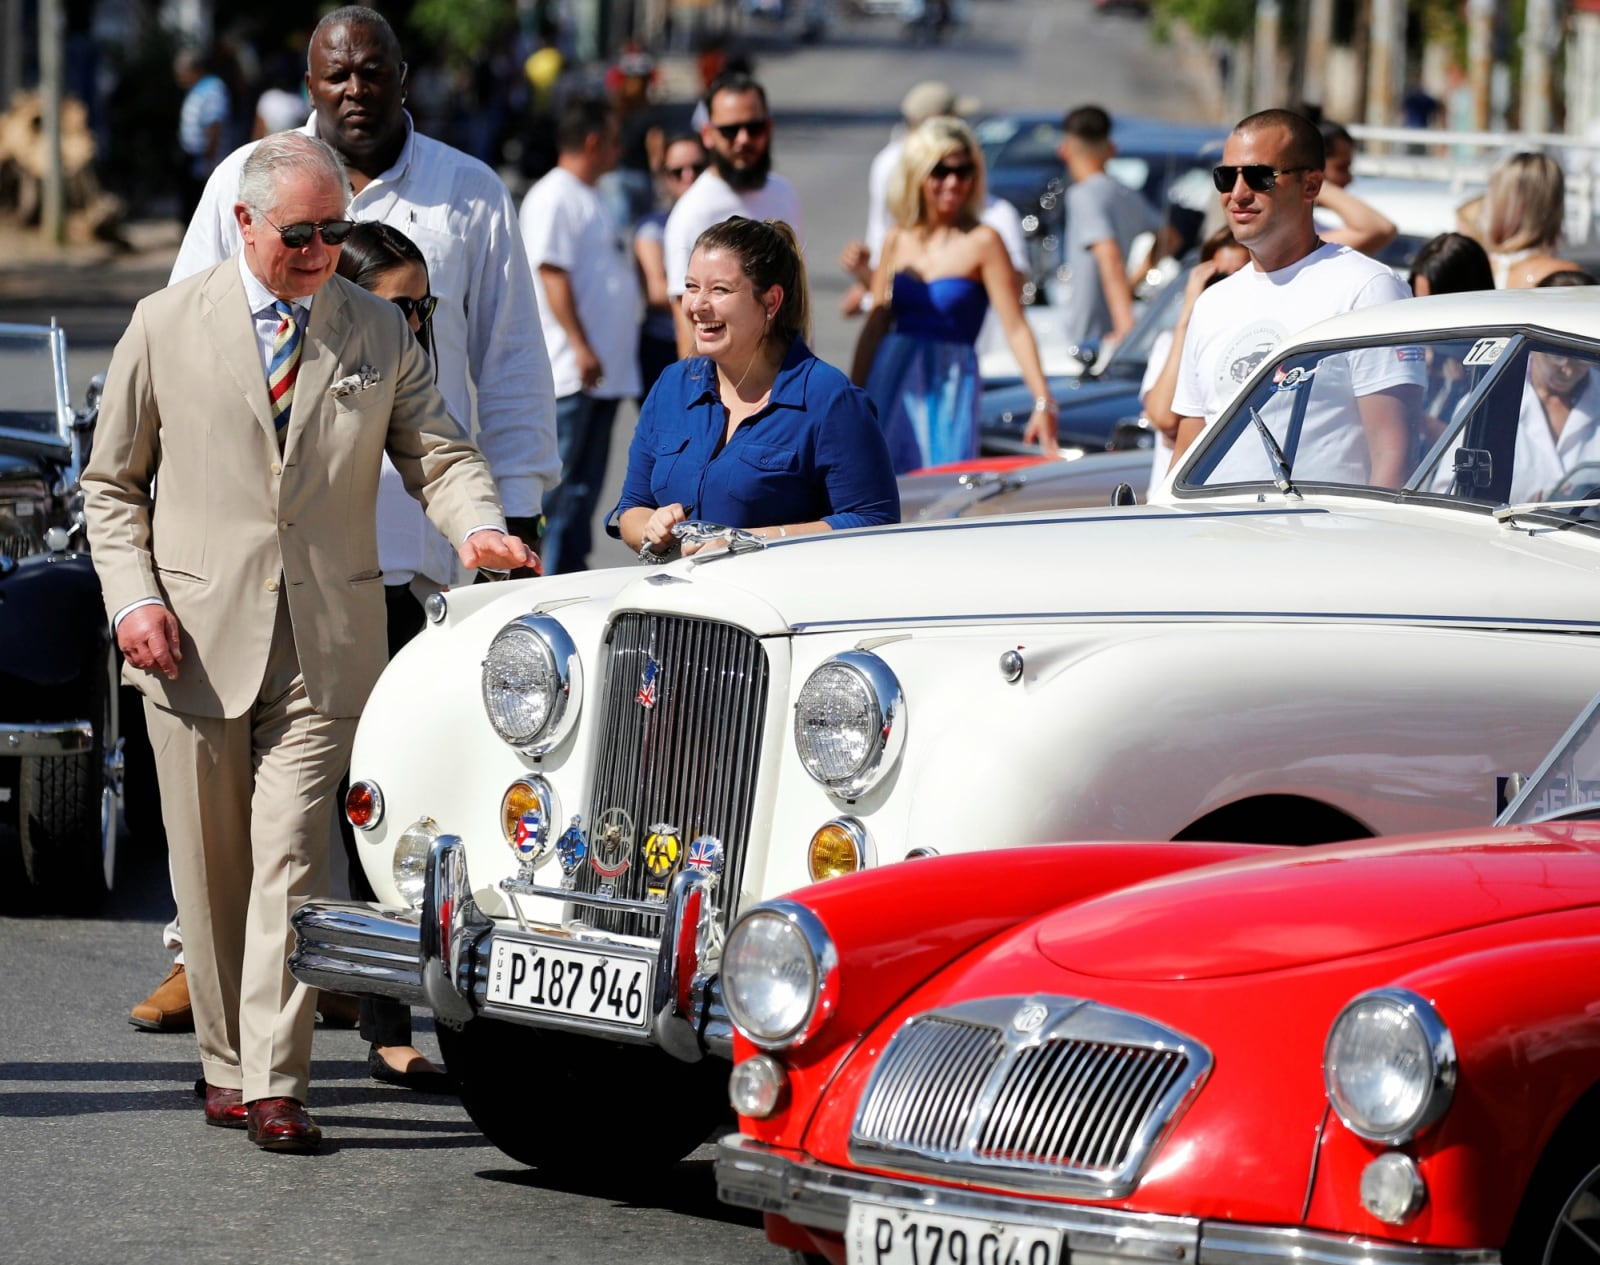 Britain's Prince Charles inspects a vintage Jaguar at a British classic car event in Havana, Cuba March 26, 2019. REUTERS/Phil Noble